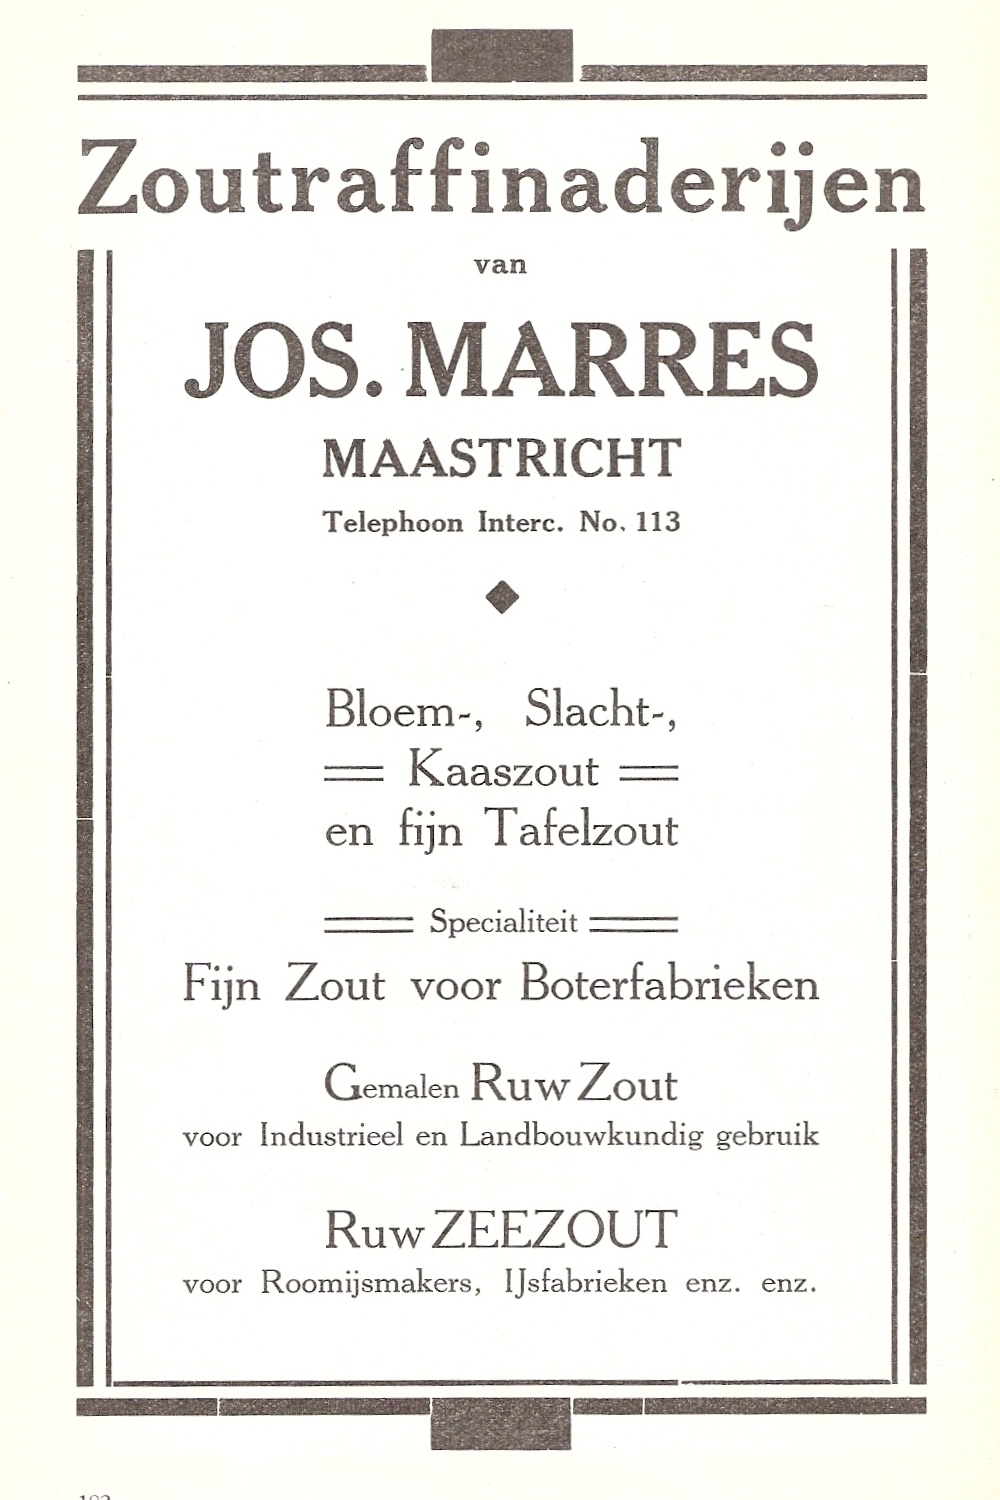 Zoutraffinaderijen Jos. Marres - advertentie